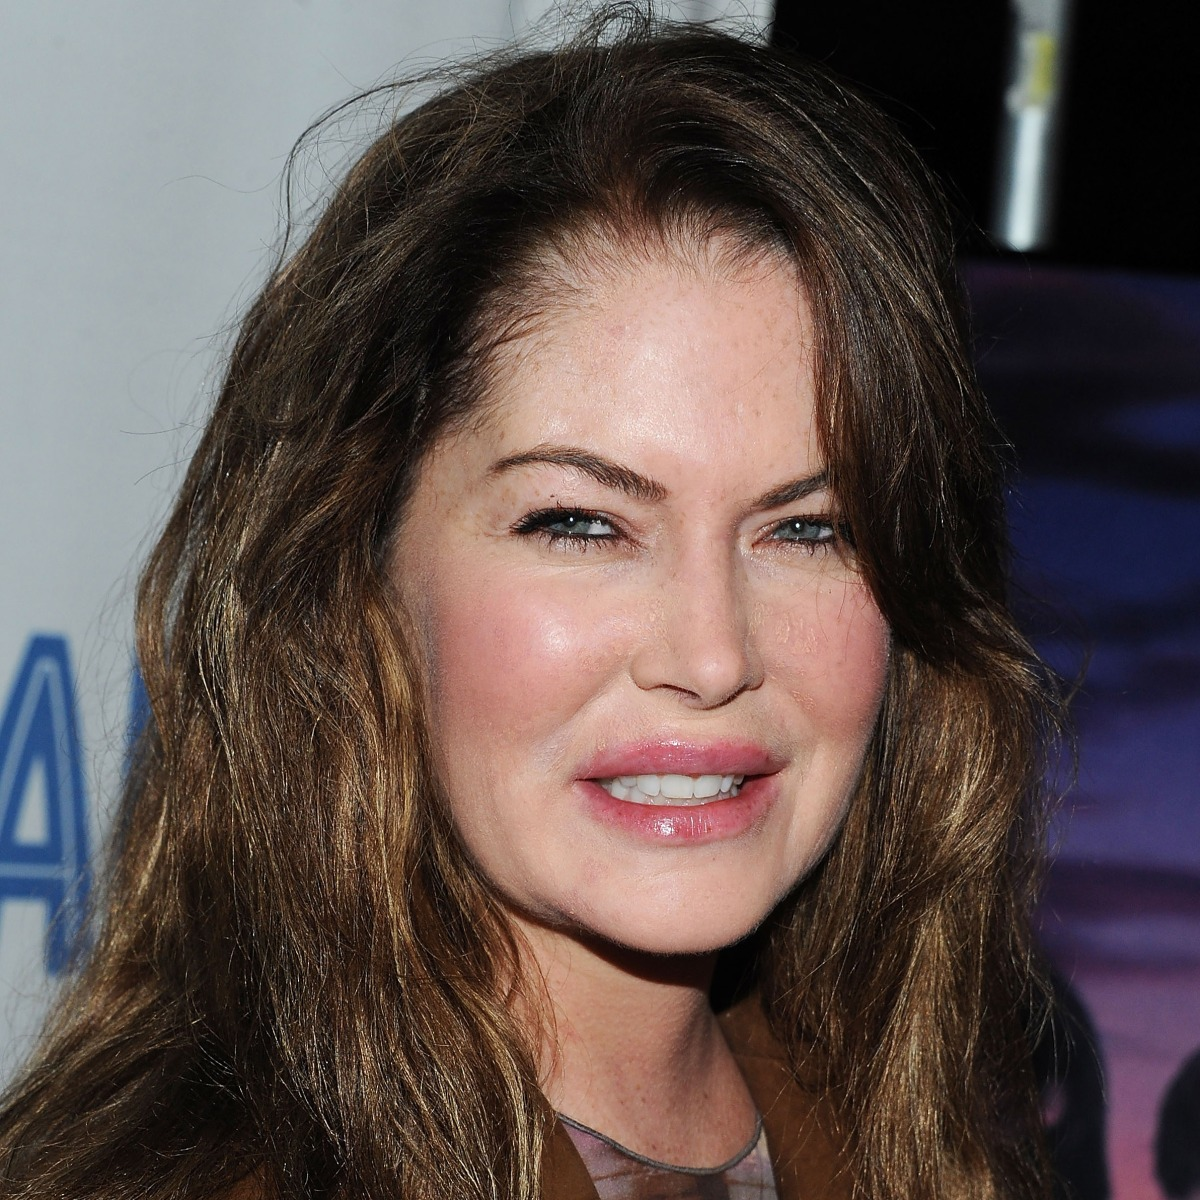 13+ Amazing Pictures of Lara Flynn Boyle - Nayra Gallery